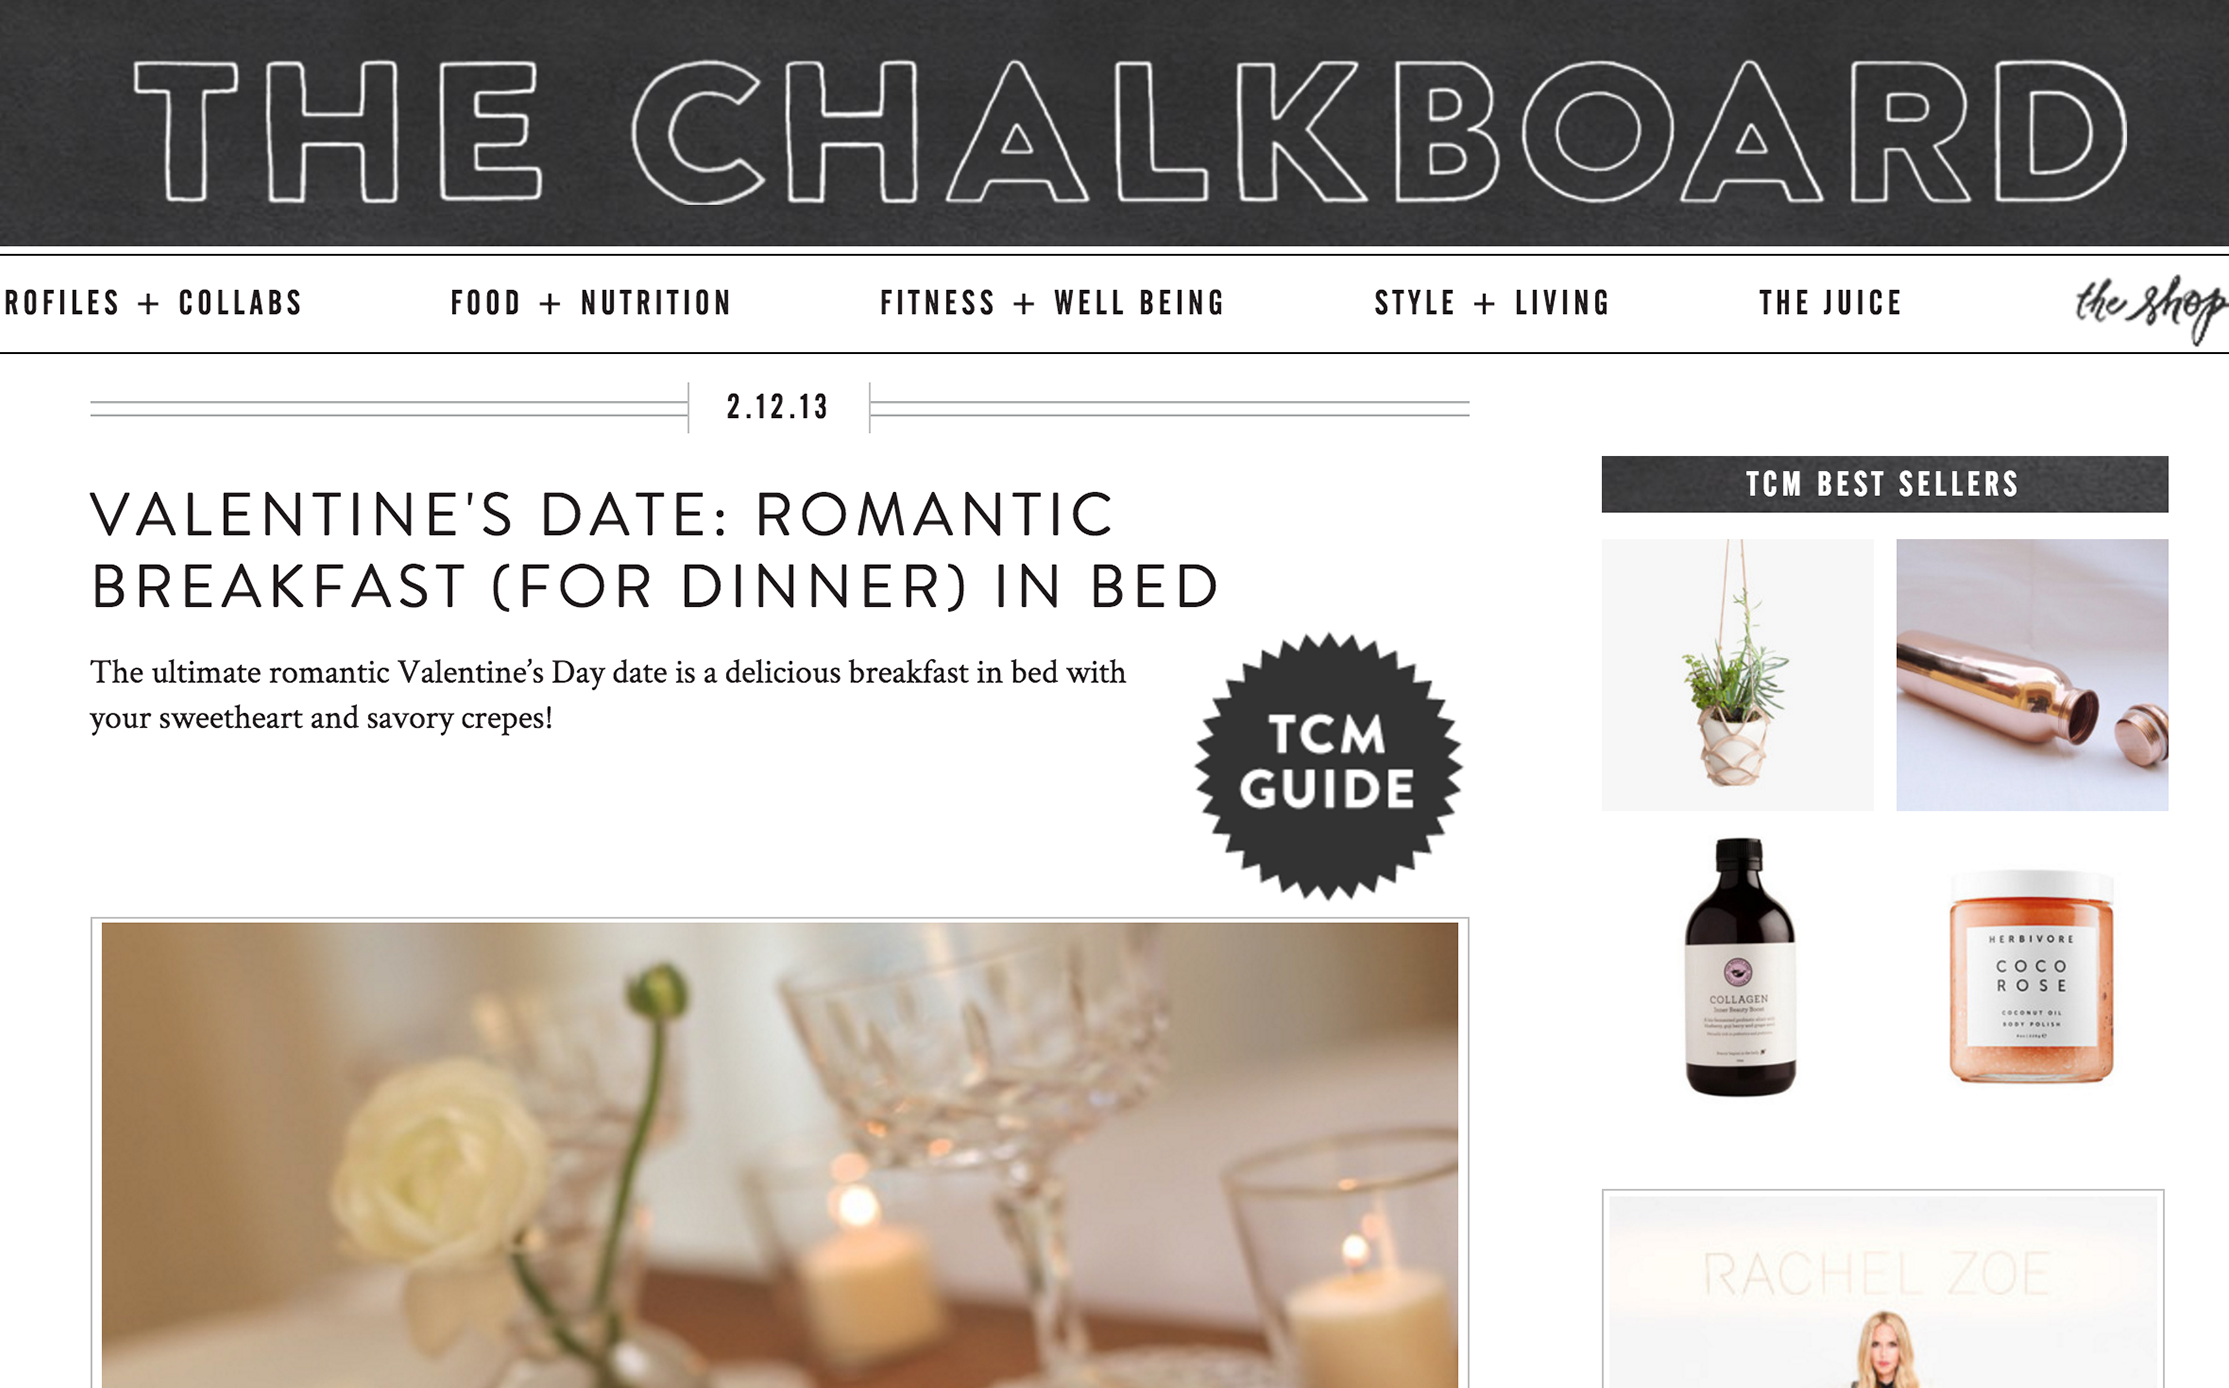 THE CHALKBOARD MAG // Breakfast in Bed featuring annie campbell